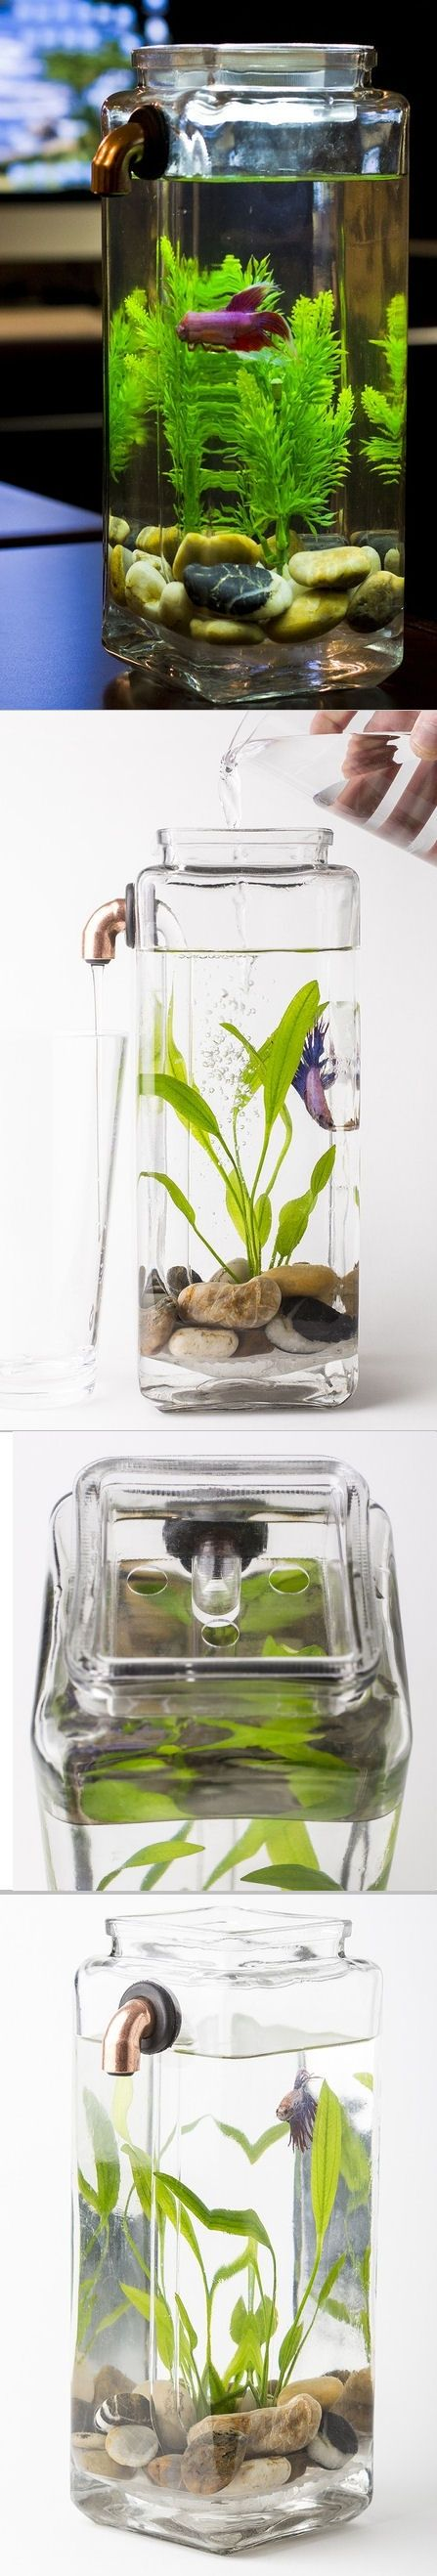 Self Cleaning Betta Aquarium -  Simply pour fresh water in, and dirty water is expelled through a tube and out of the tank while your fish swims happily within. There are no filters, batteries, or cords.